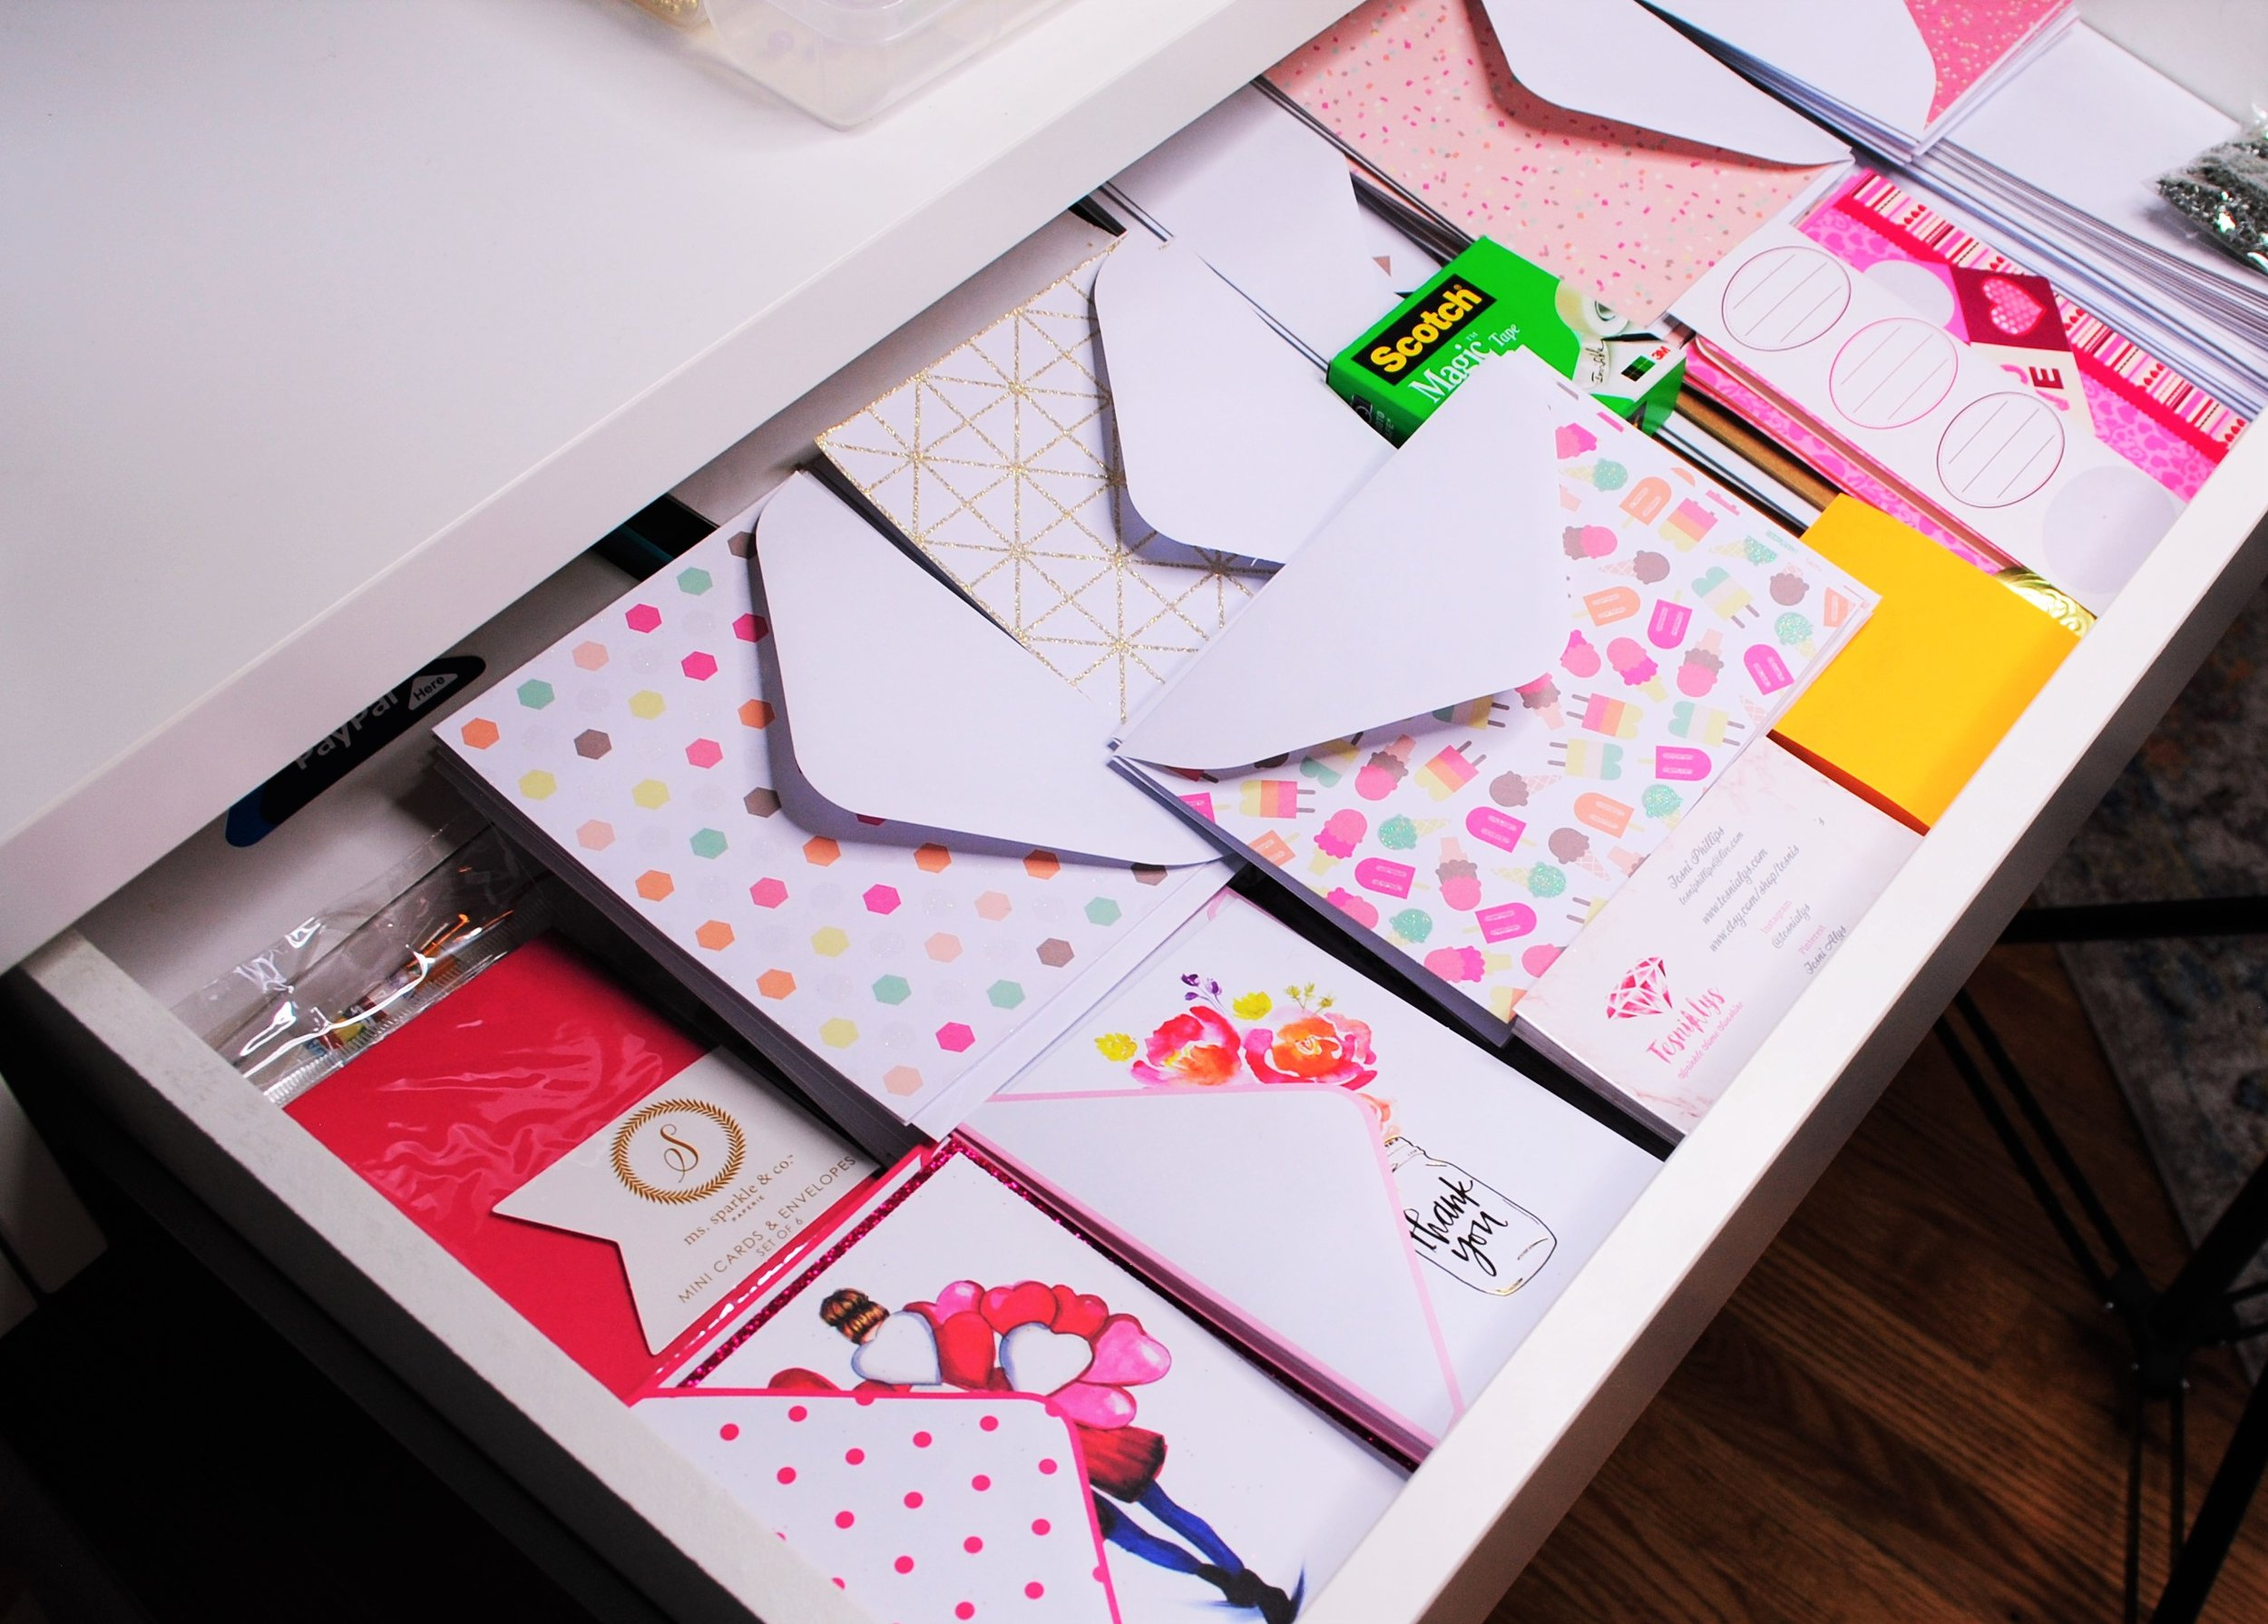 Drawer #2: Cards and Envelopes - I love writing letters and cards, so this drawer contains all of my letter writing materials. I will be sharing a post with my favorite cards from Papyrus next week, so stay tuned for that!